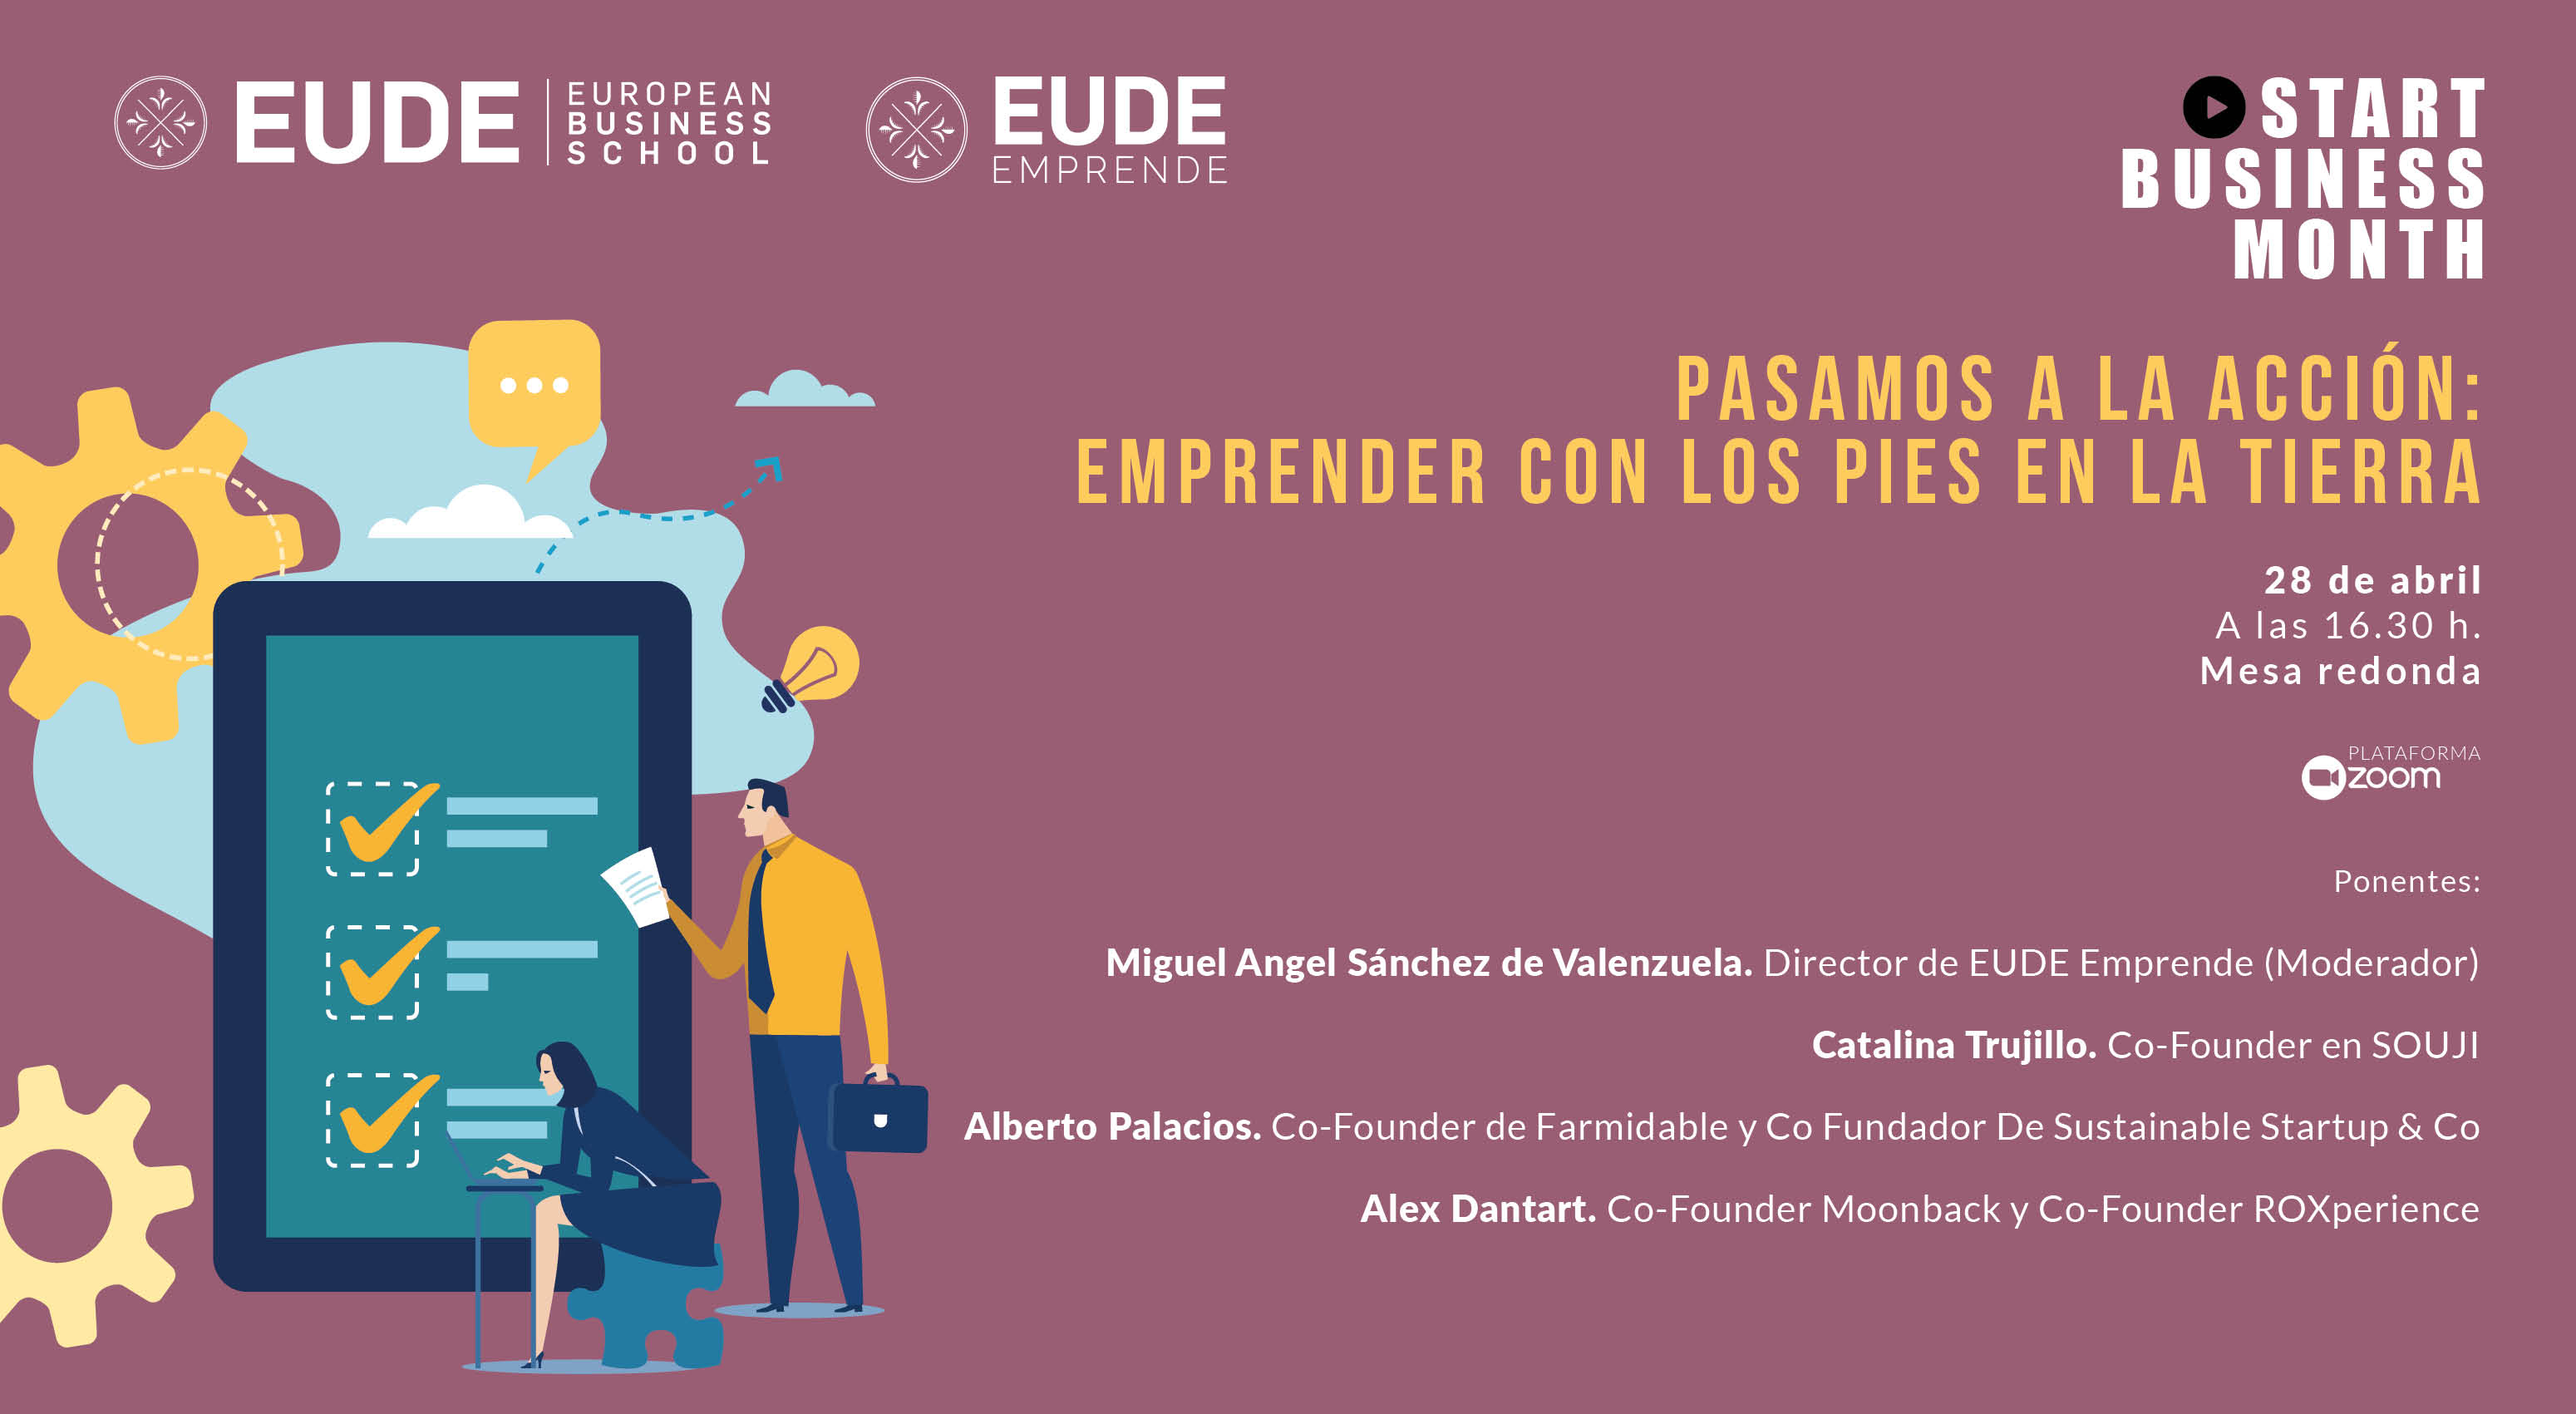 Foto - Start Business Month | Pasamos a la Acción: emprender con los pies en la tierra